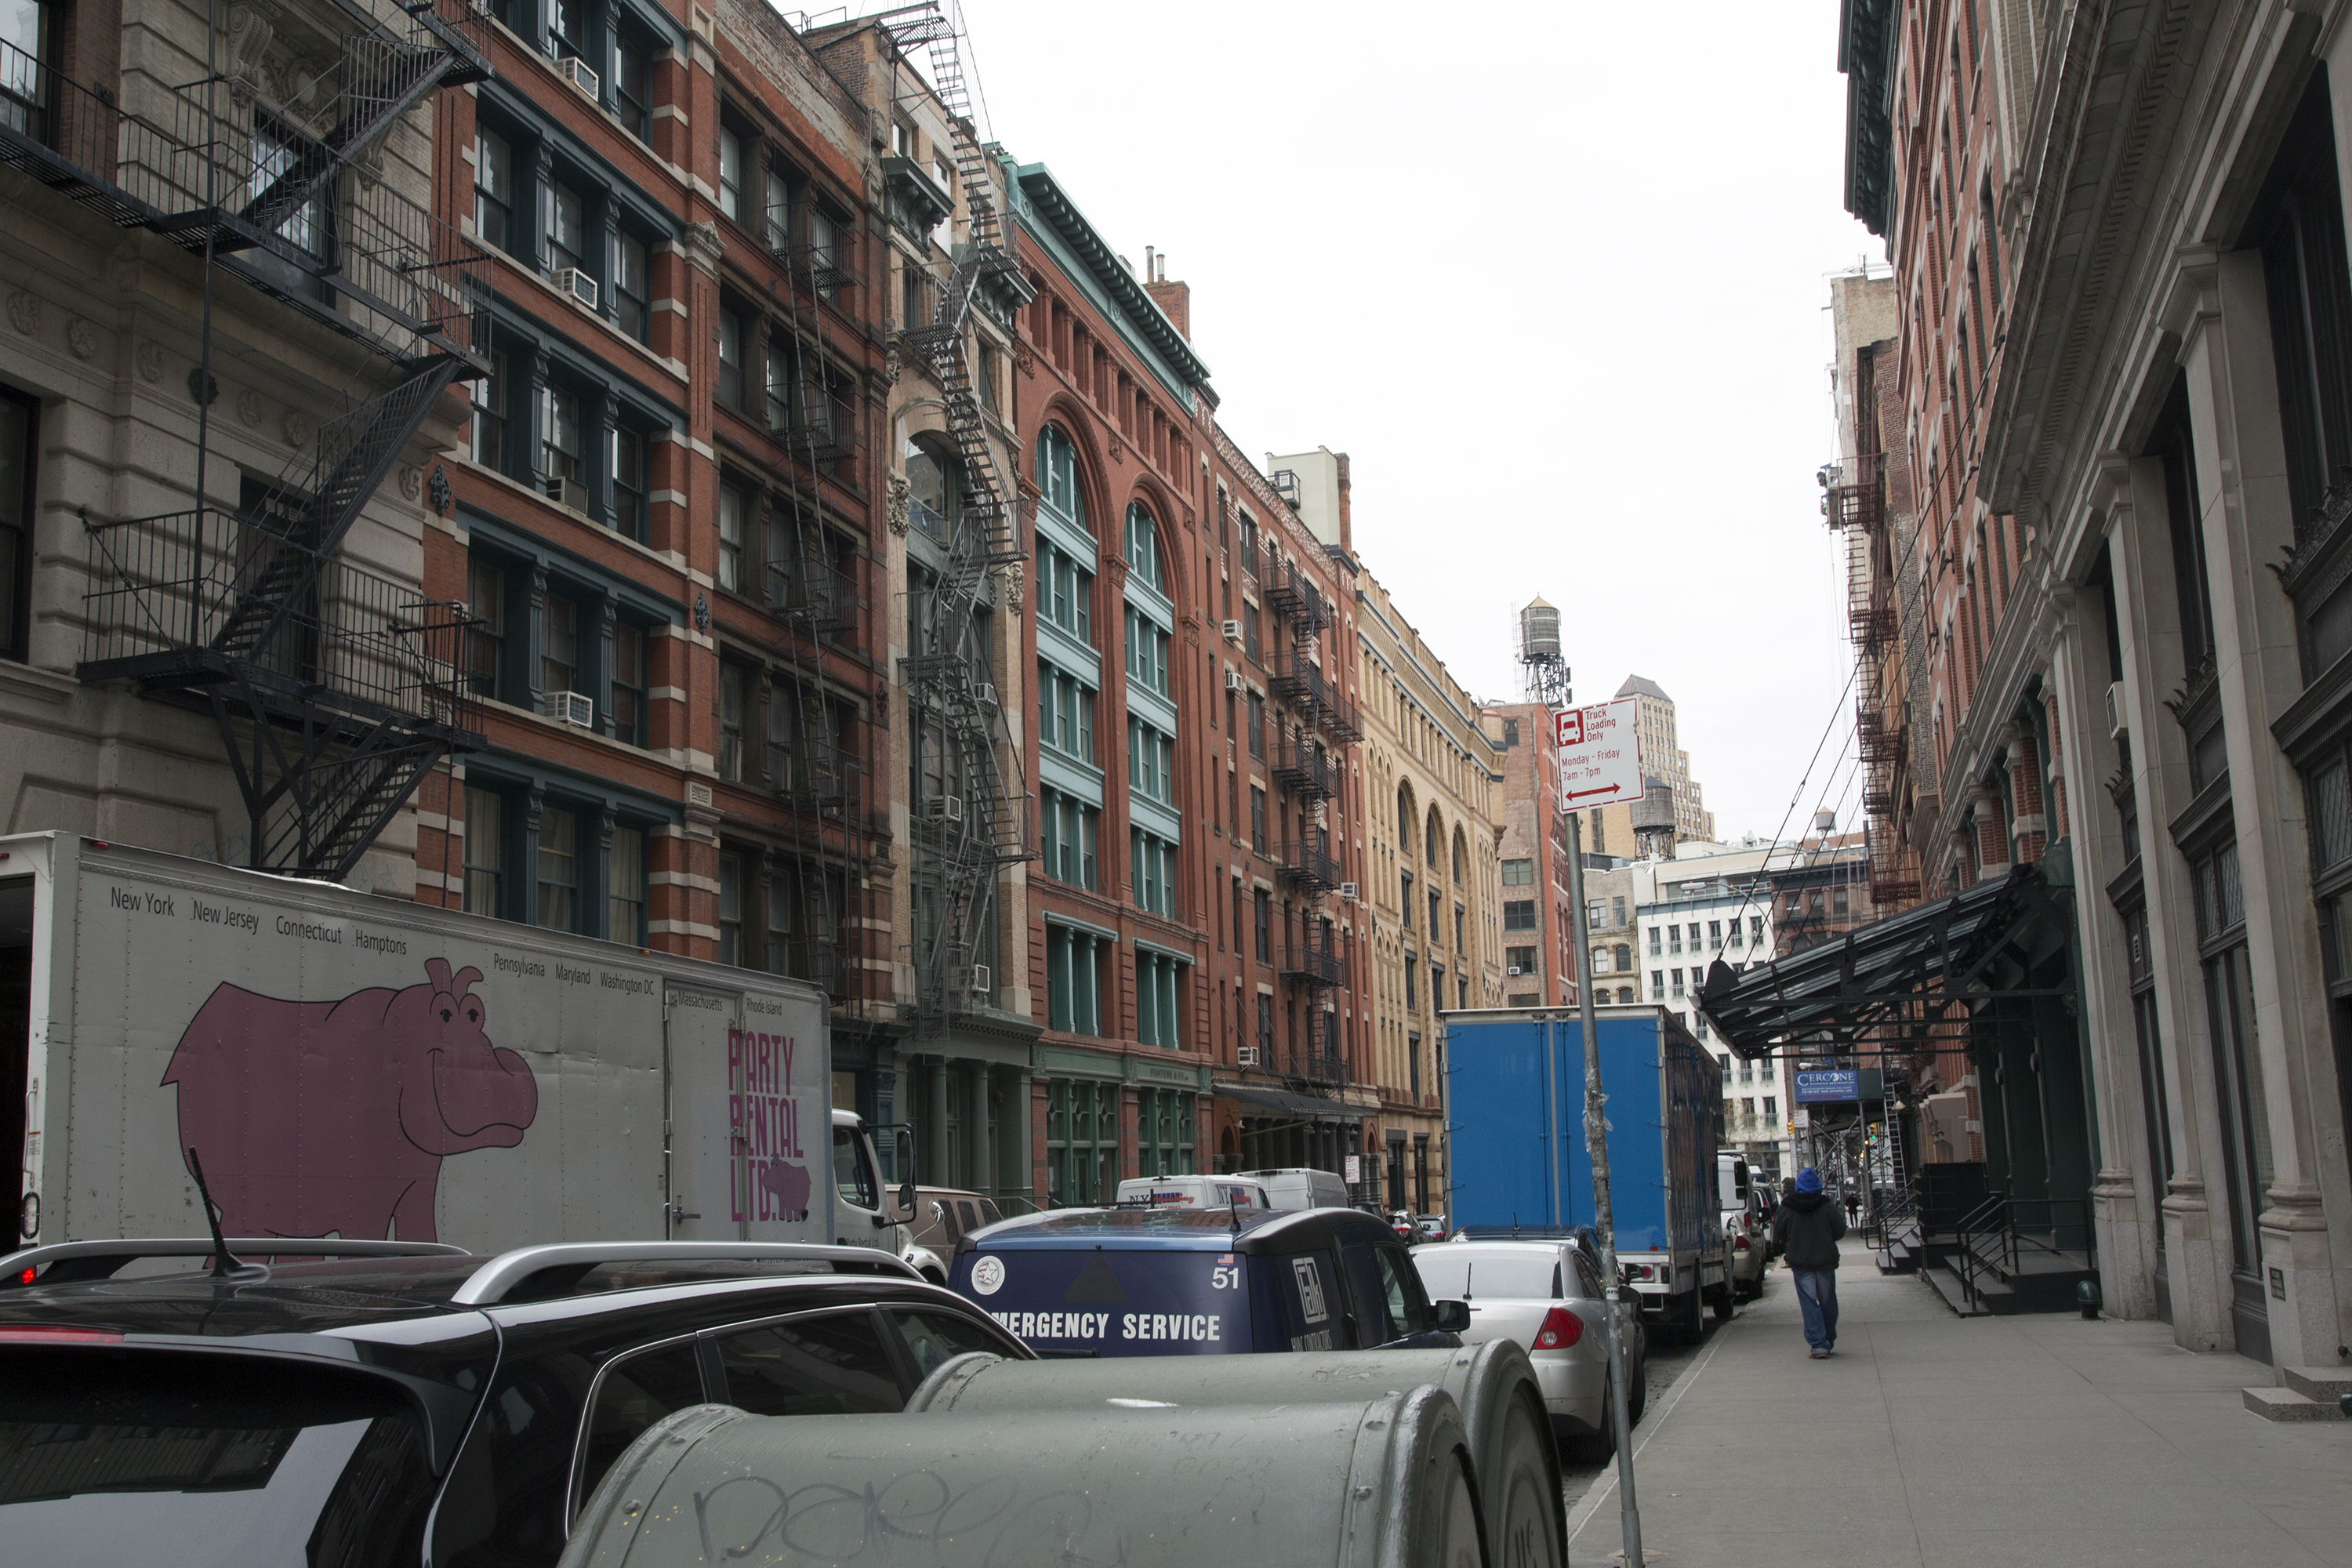 Swift's one-way cobblestone street in Tribeca is dotted with a mix of expensive housing, boutique shops, loading zones and empty storefronts.